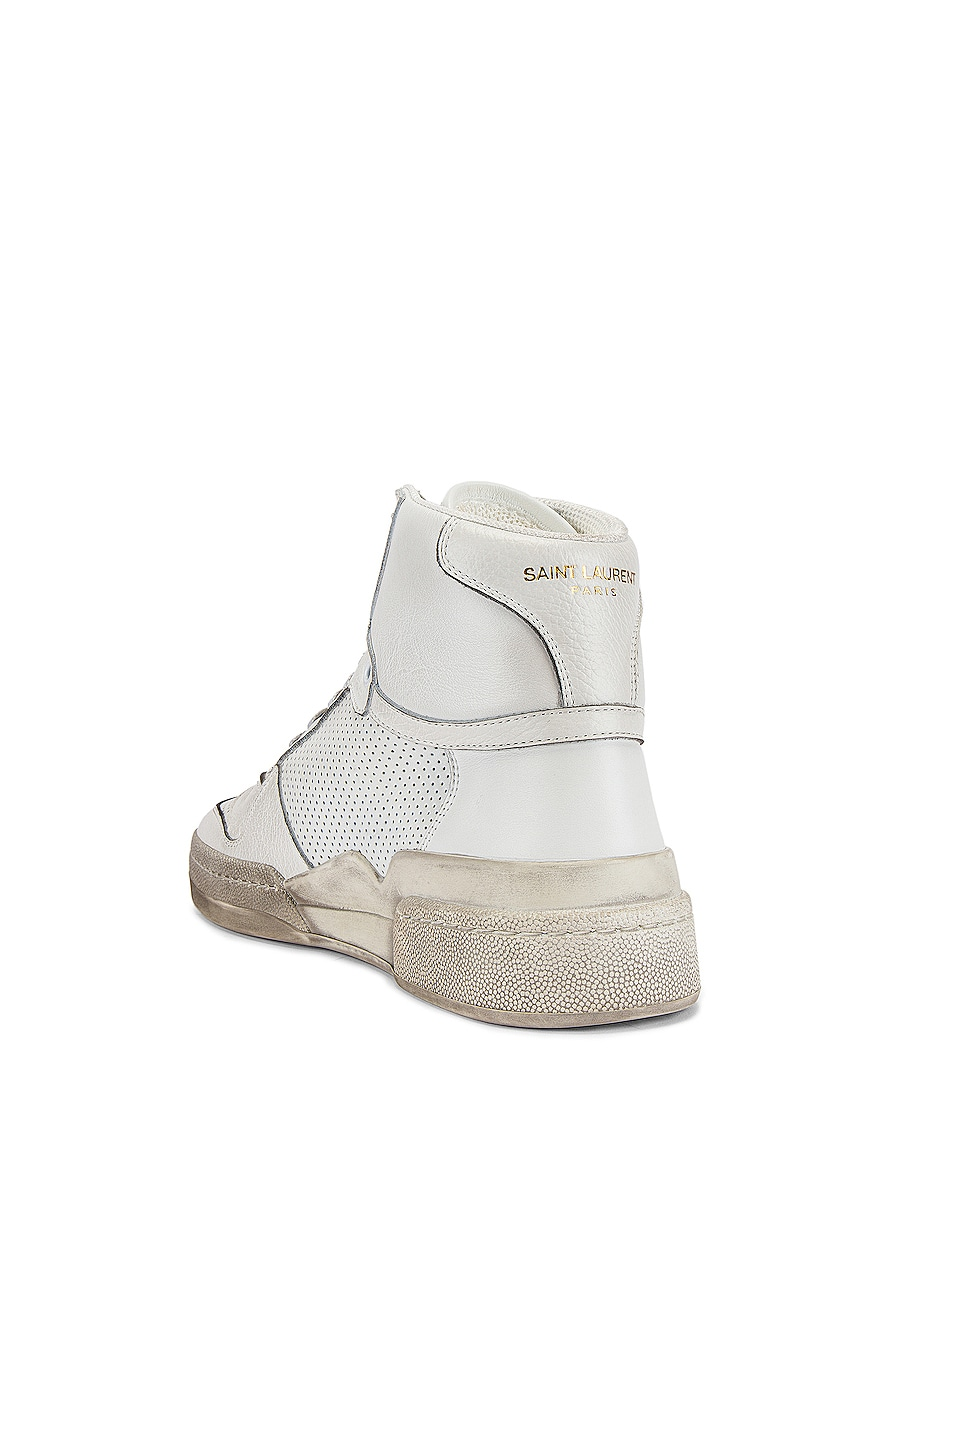 Image 3 of Saint Laurent SL24 Hi Top Sneaker in White